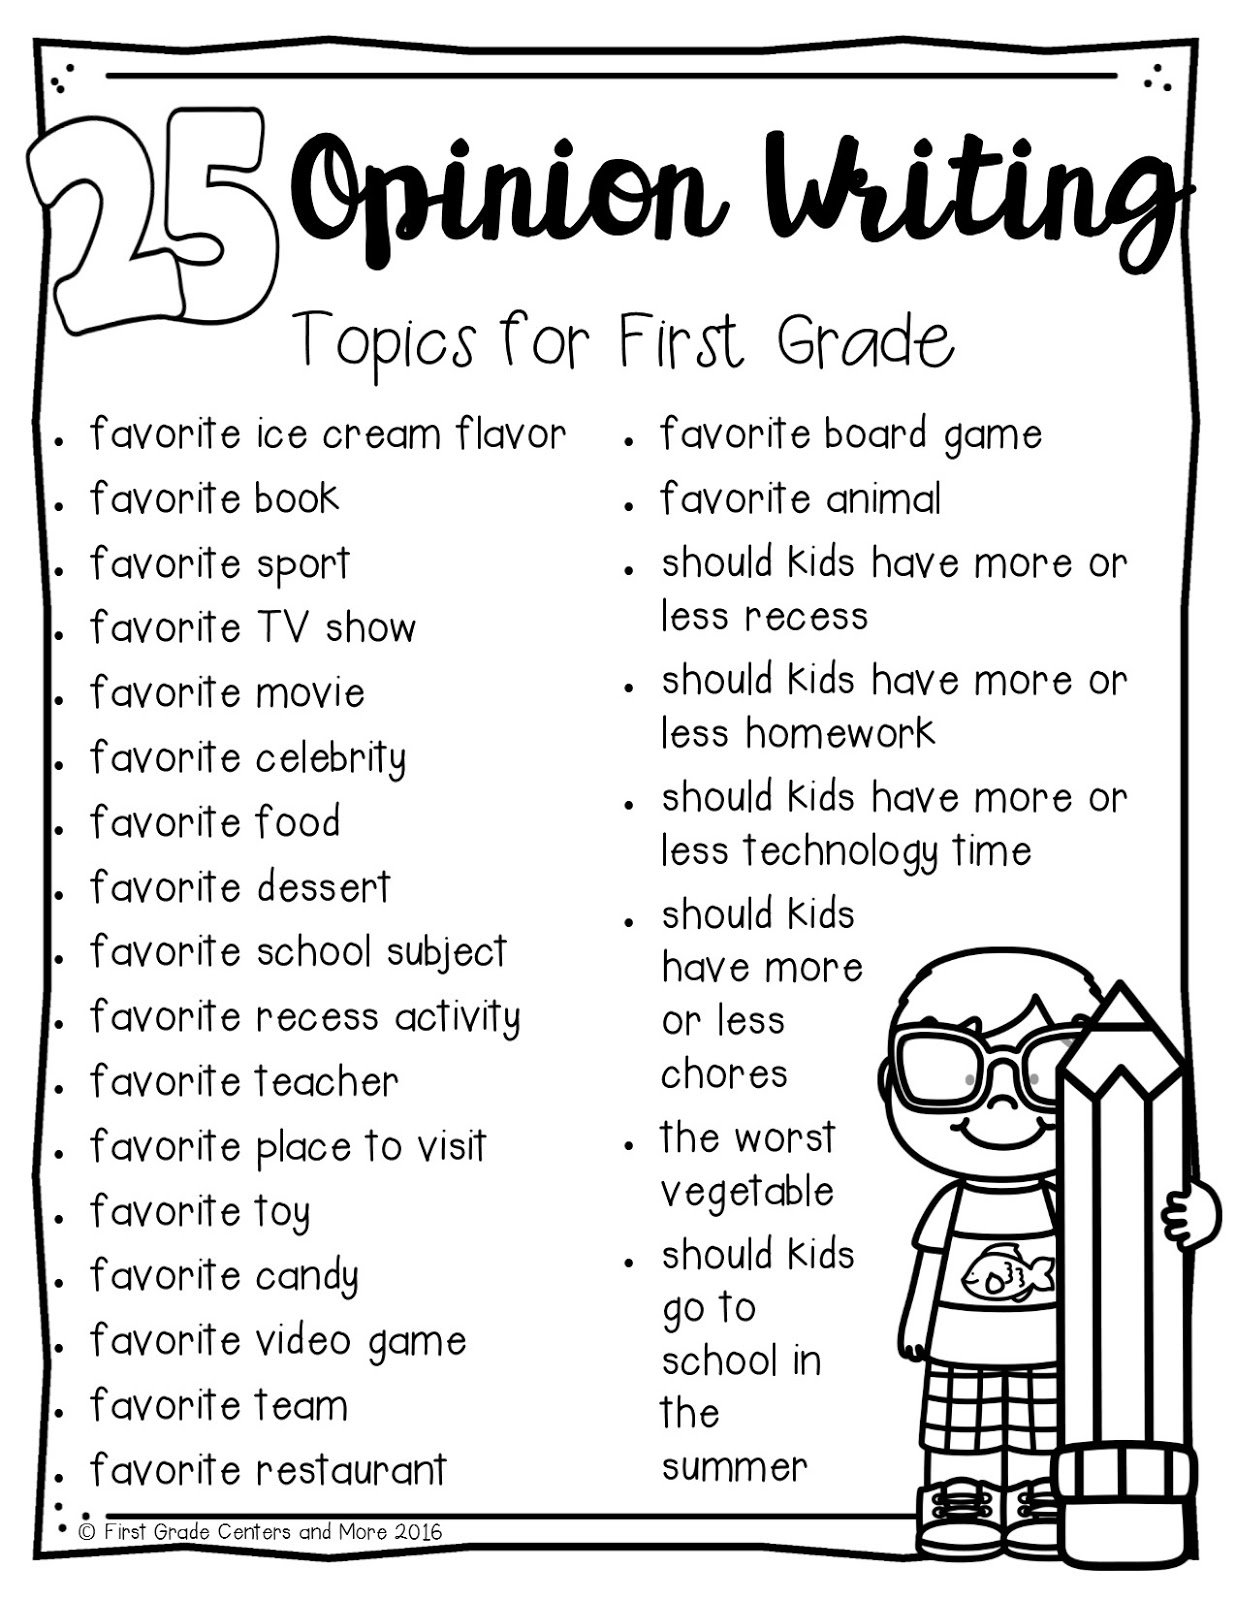 10 Spectacular Writing Ideas For First Grade opinion writing first grade centers and more 2020